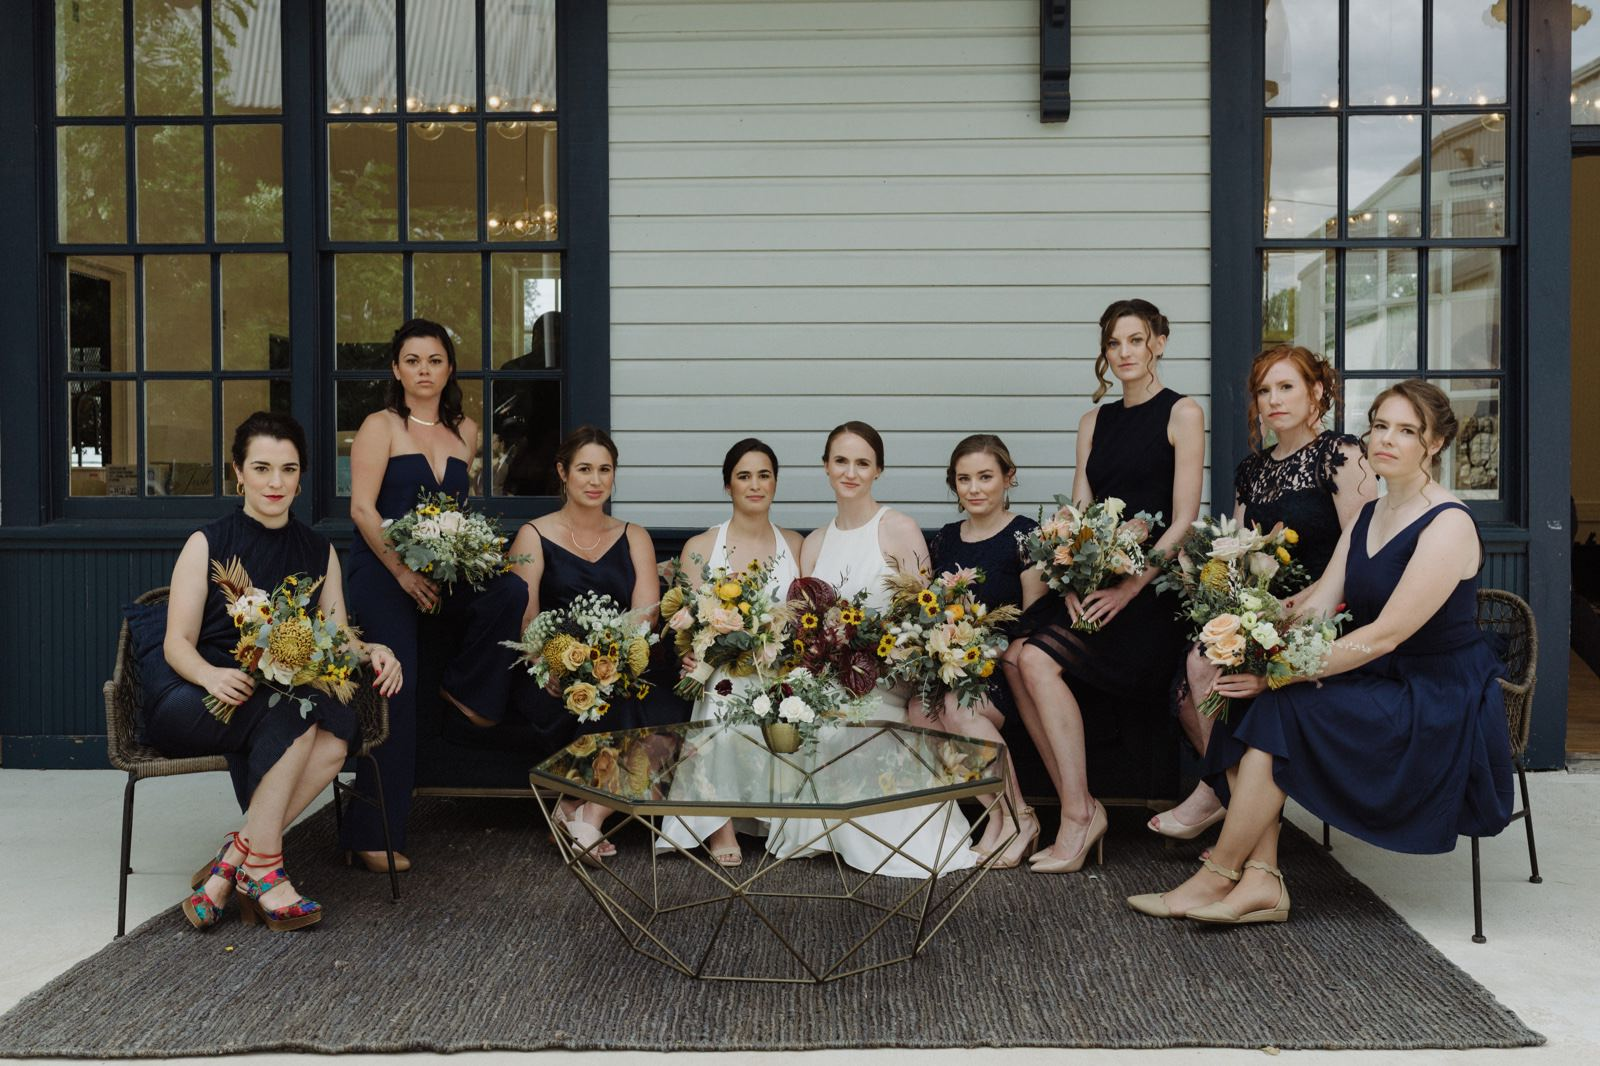 All women wedding party for an LGBTQ wedding in Austin with unique navy dresses and pantsuits and toffee and soft pink bouquets